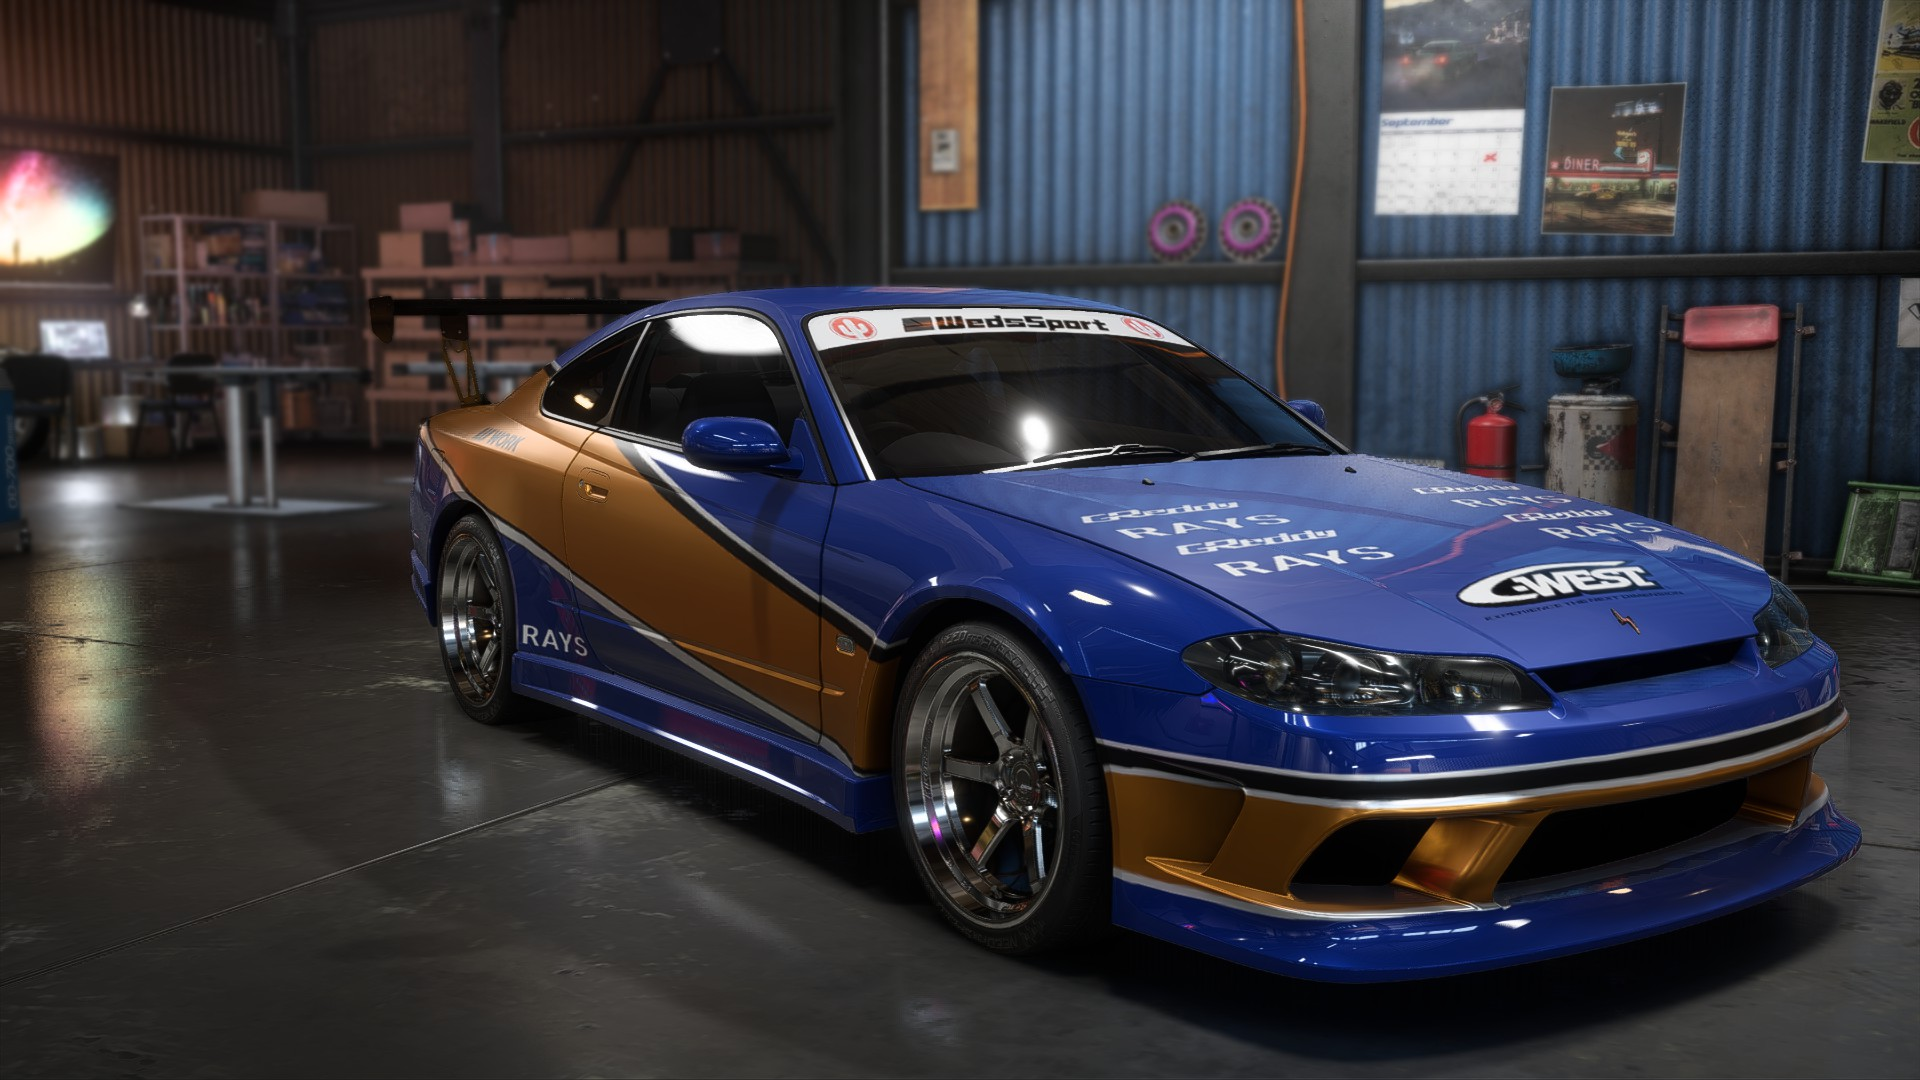 https://www.makro.co.za/games-gaming/video-games/software/playstation-software/ps4-need-for-speed-payback-/p/000000000000344429_EA